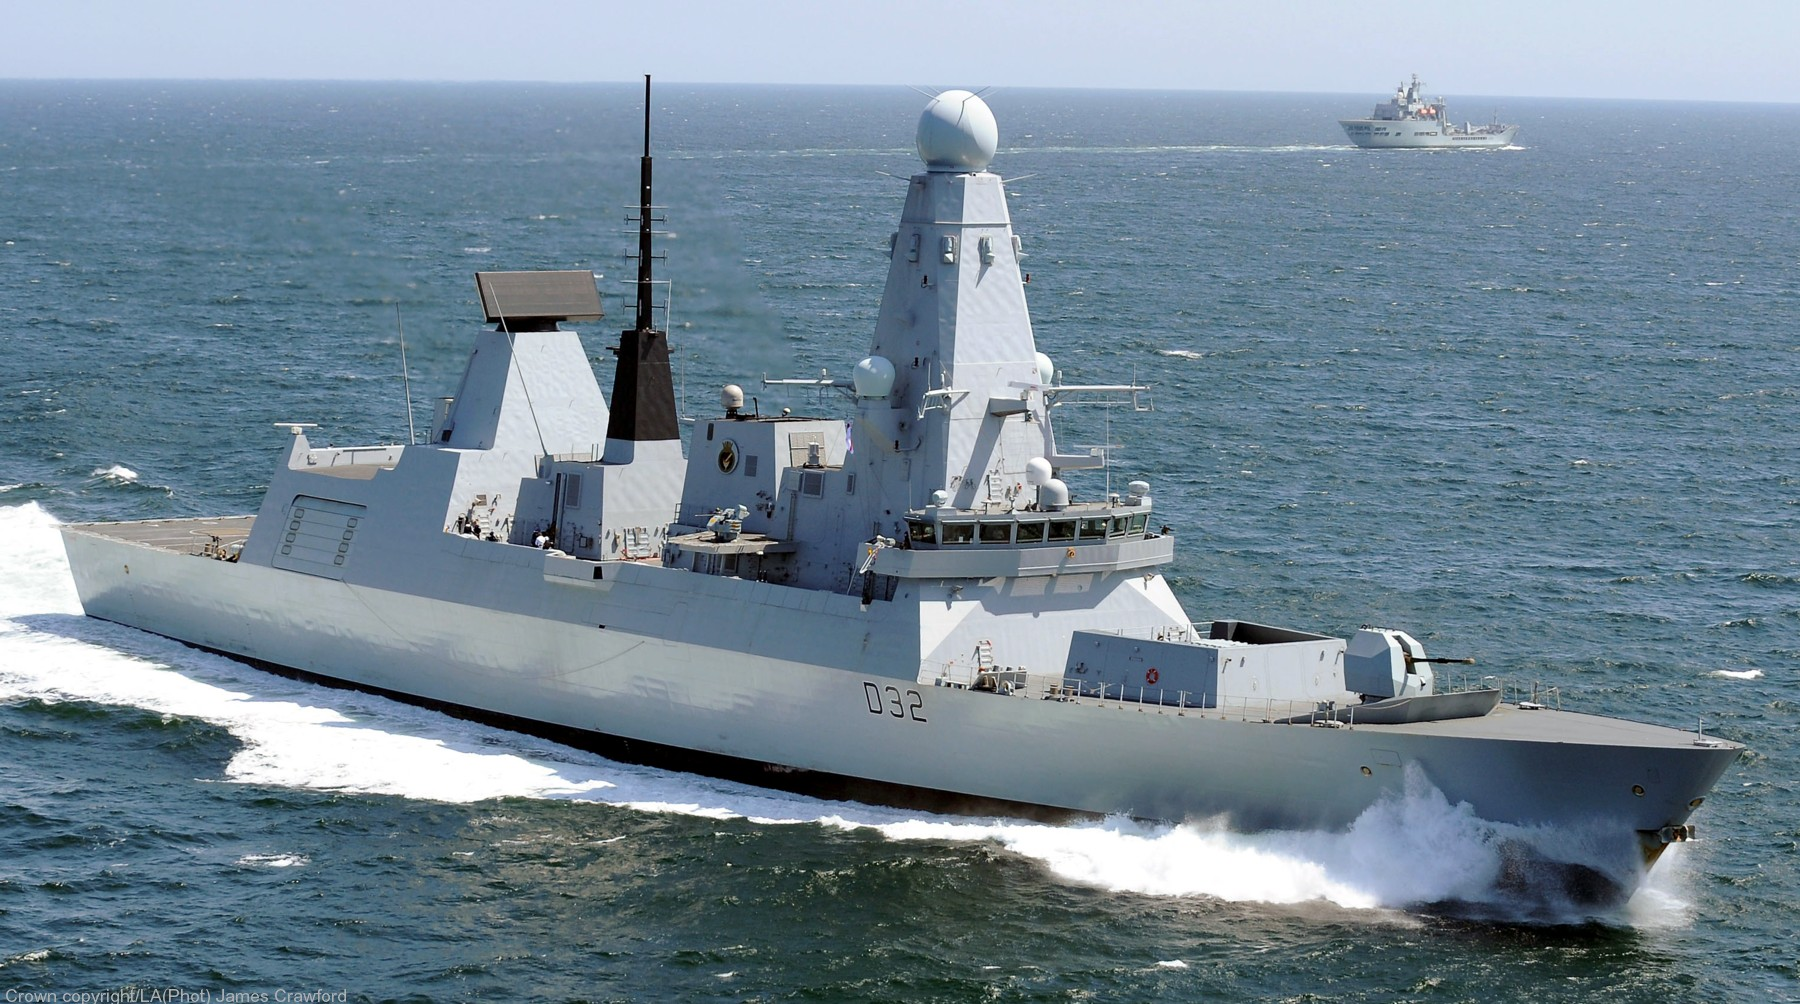 hms daring d 32 class type 45 guided missile destroyer